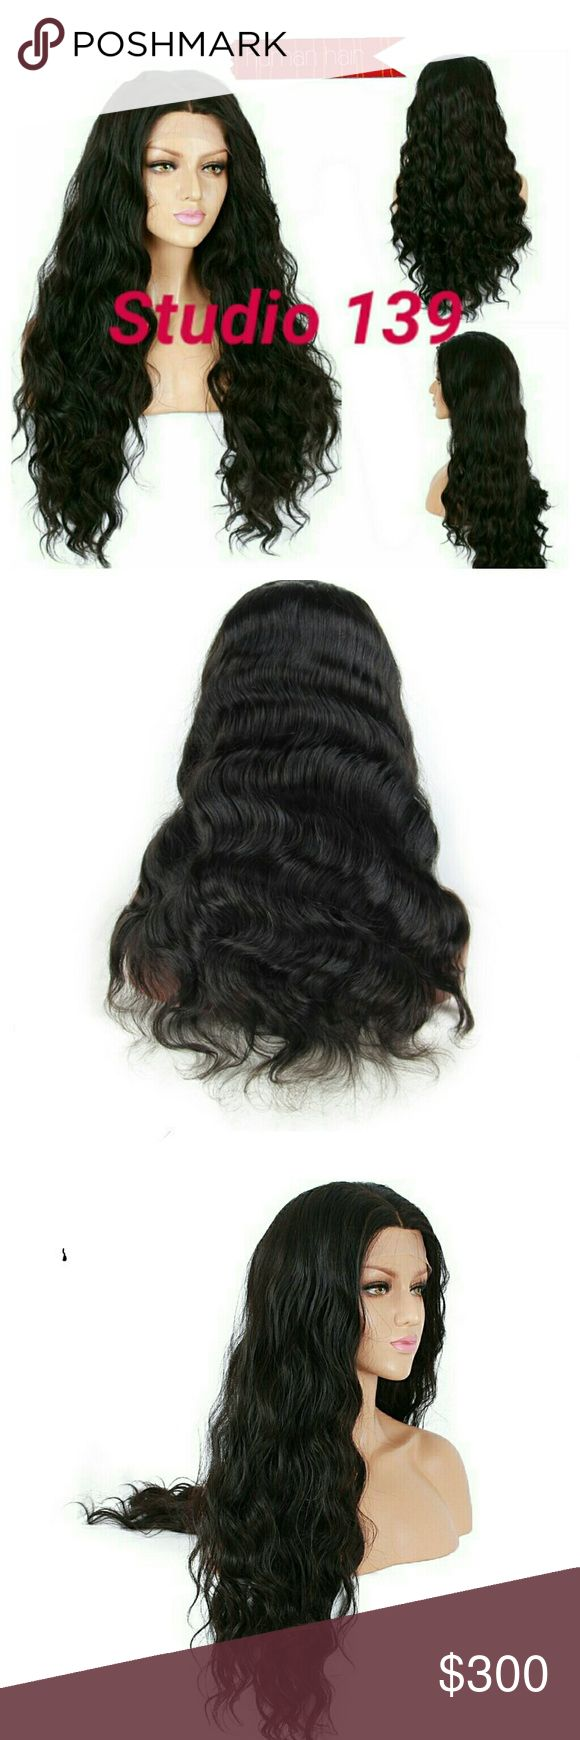 Sexy human hair body wave Lace front wig Sexy black body wave lace front wig this unit can be dyed any color or straighten out life span for this hair is 3+ years Accessories Hair Accessories